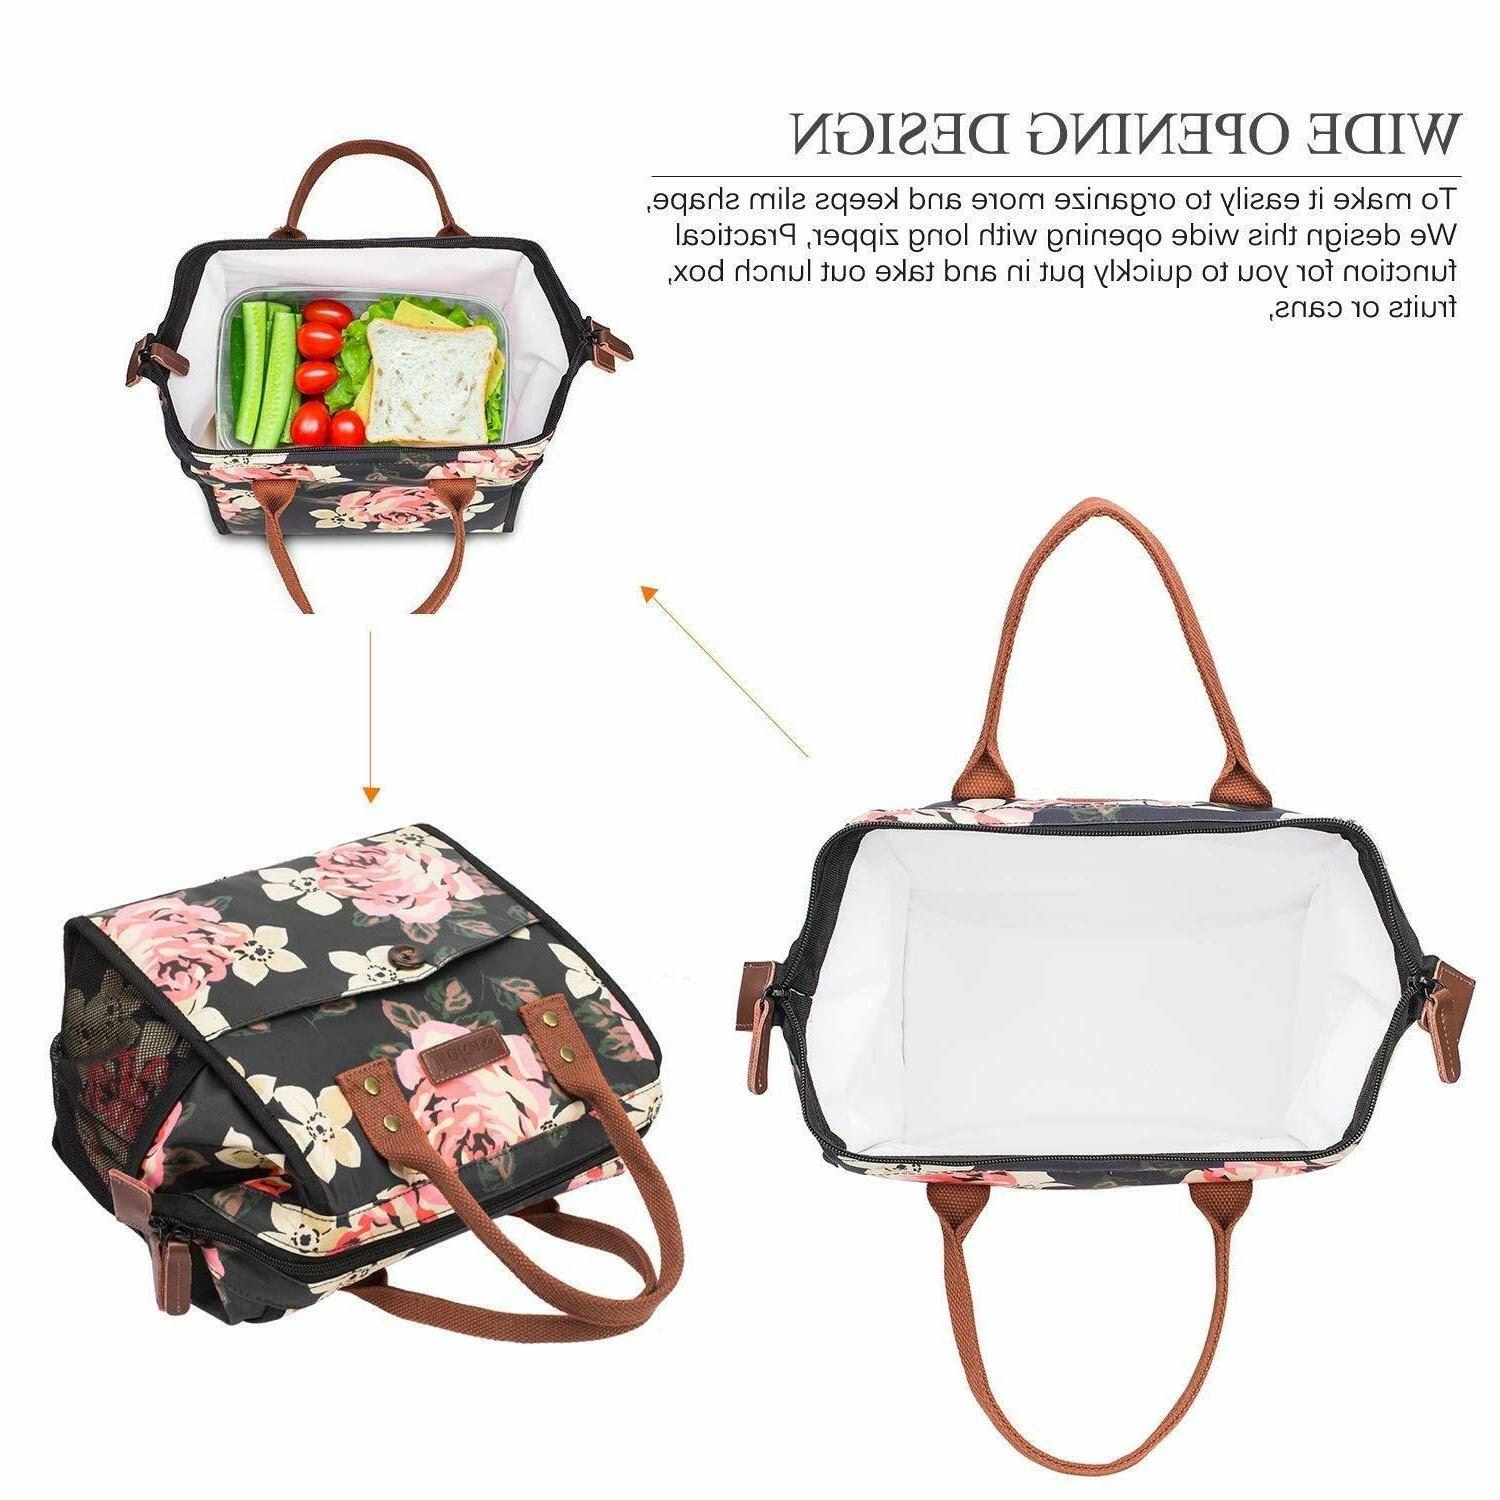 LOKASS Insulated Lunch Bag Cooler Food Bag Lunch &